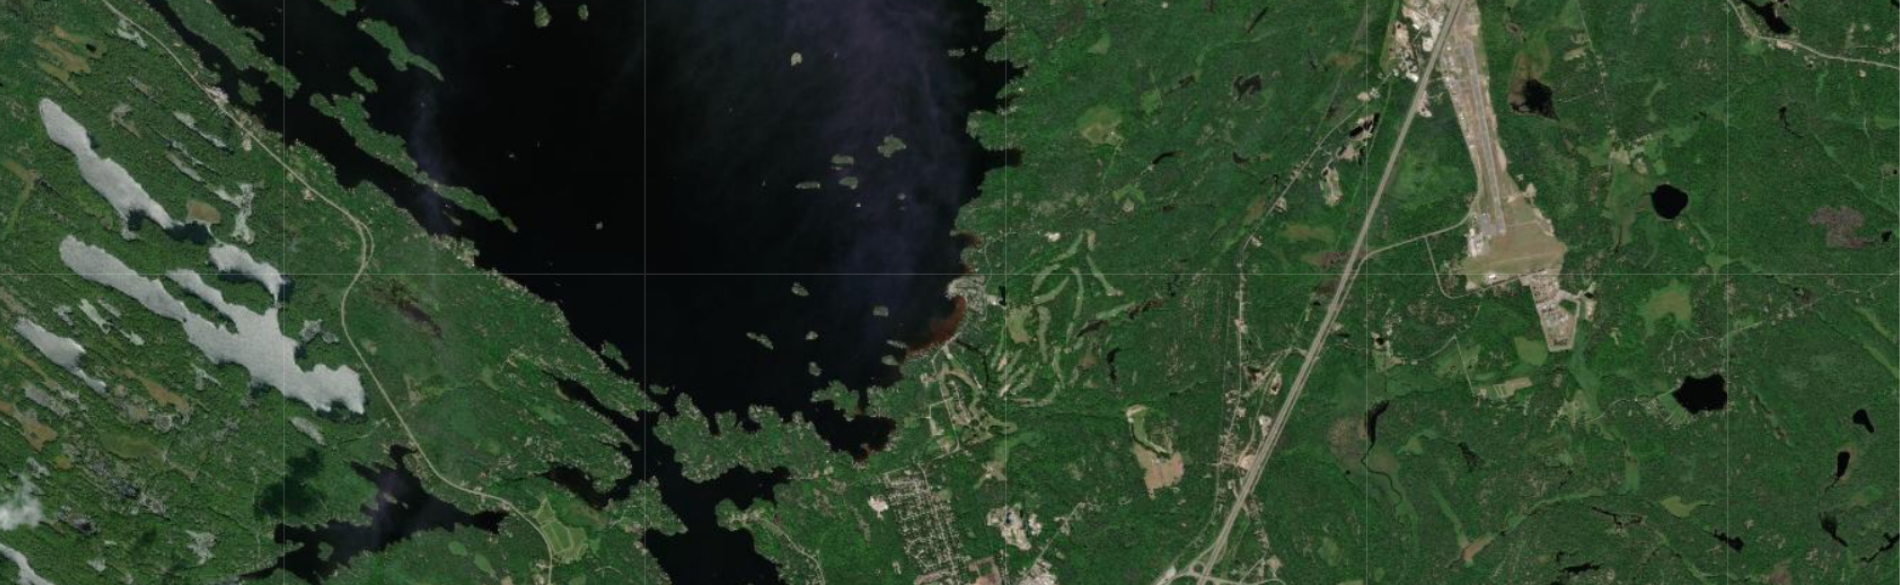 an aerial view of muskoka showing water and land